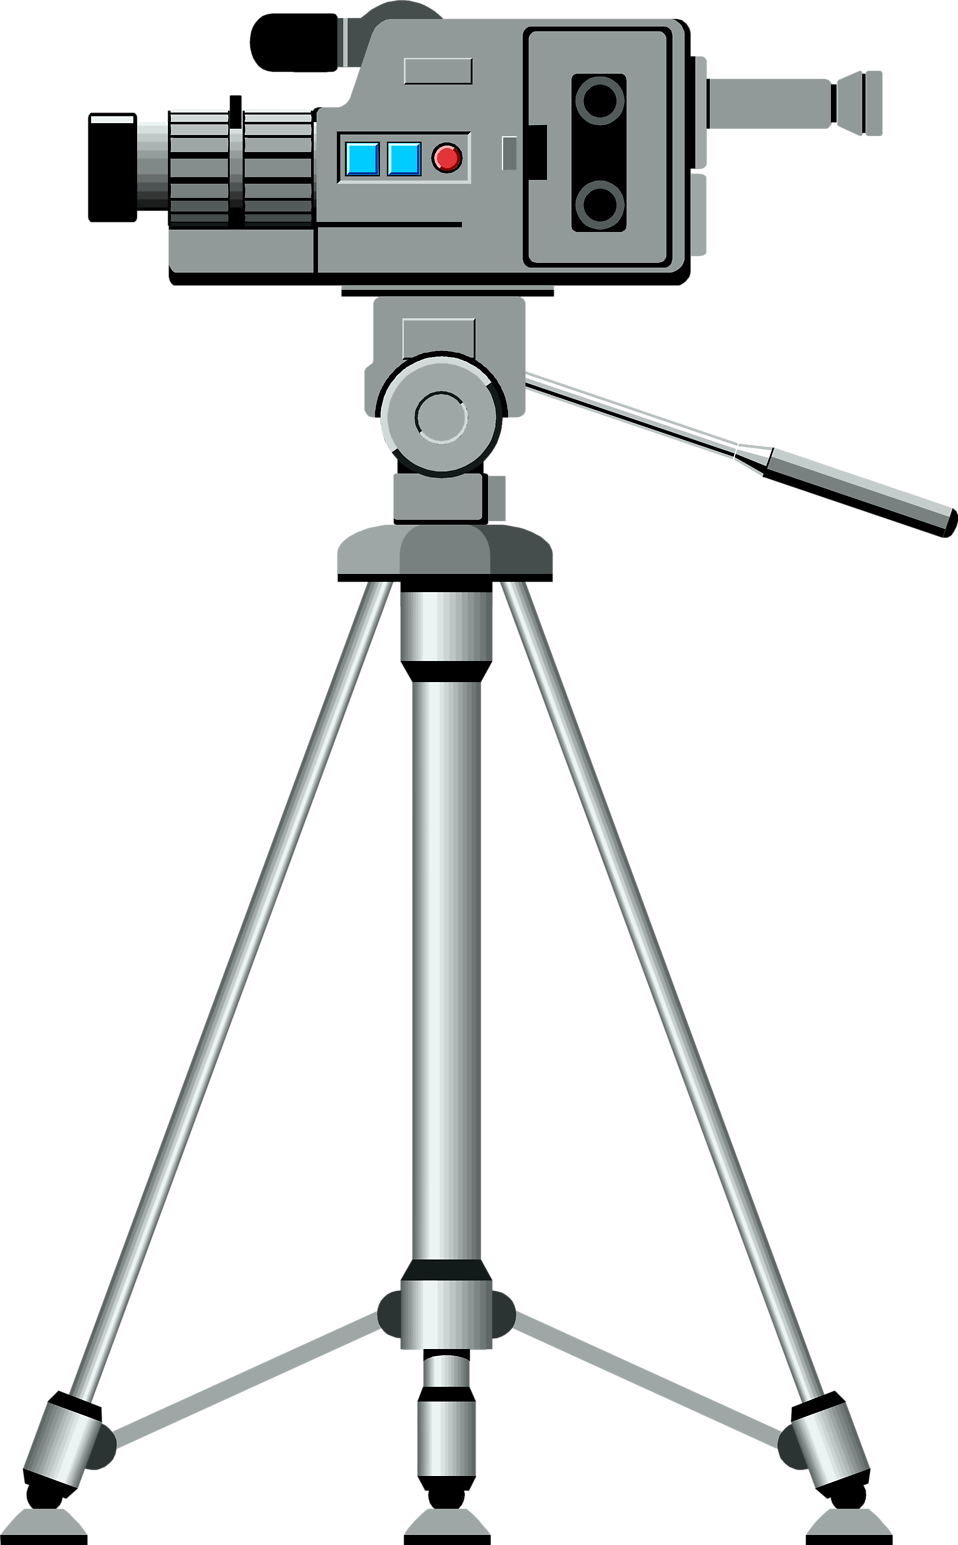 Illustration of a video camera on a tripod : Free Stock Photo